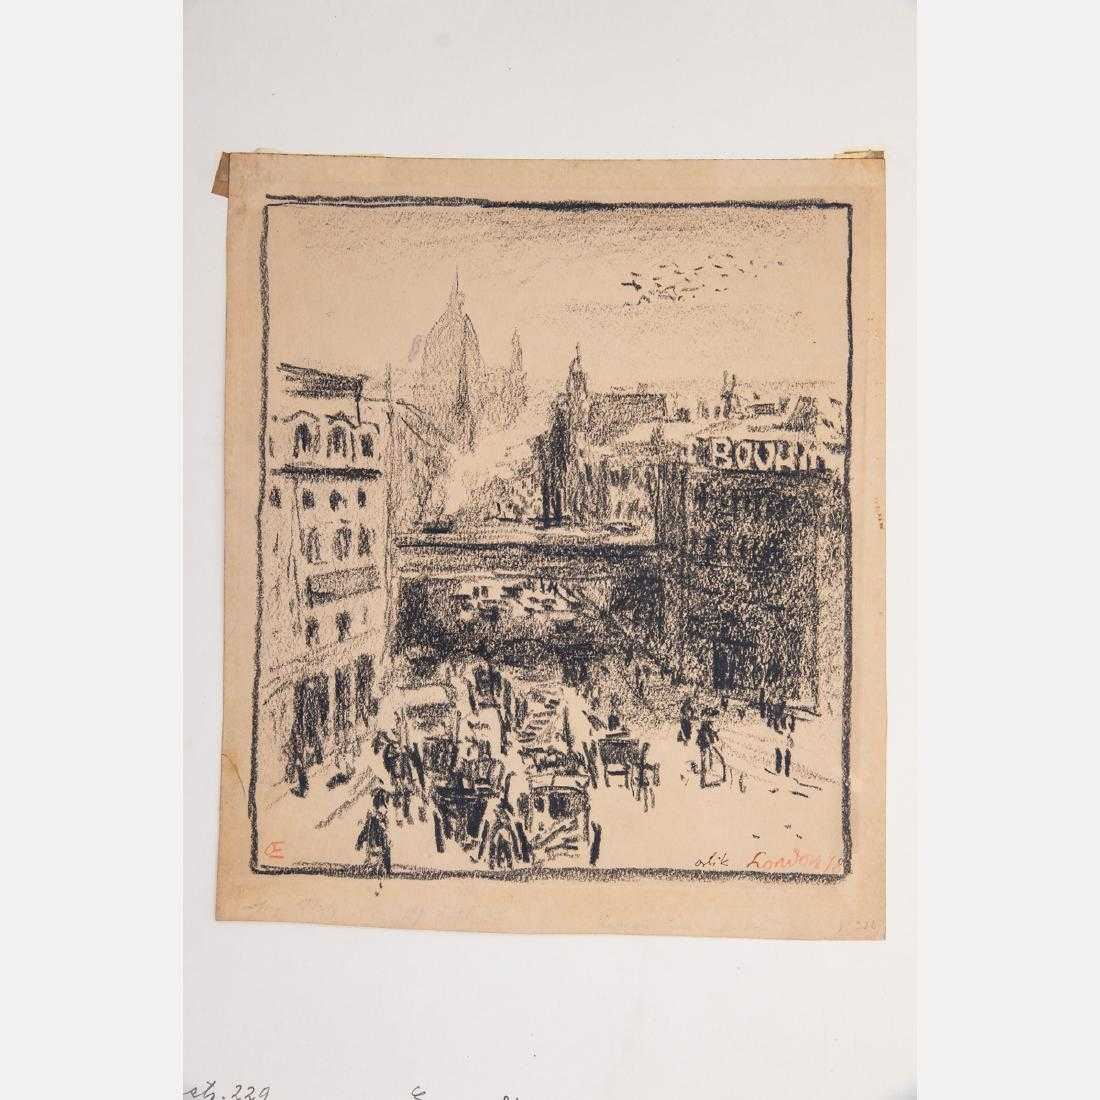 A selection of drawings by Emil Orlik (1870-1932), the Czech-born painter, etcher and lithographer, will include this charcoal on wove paper signed, dated and titled London 1898 (est. $300-$500).